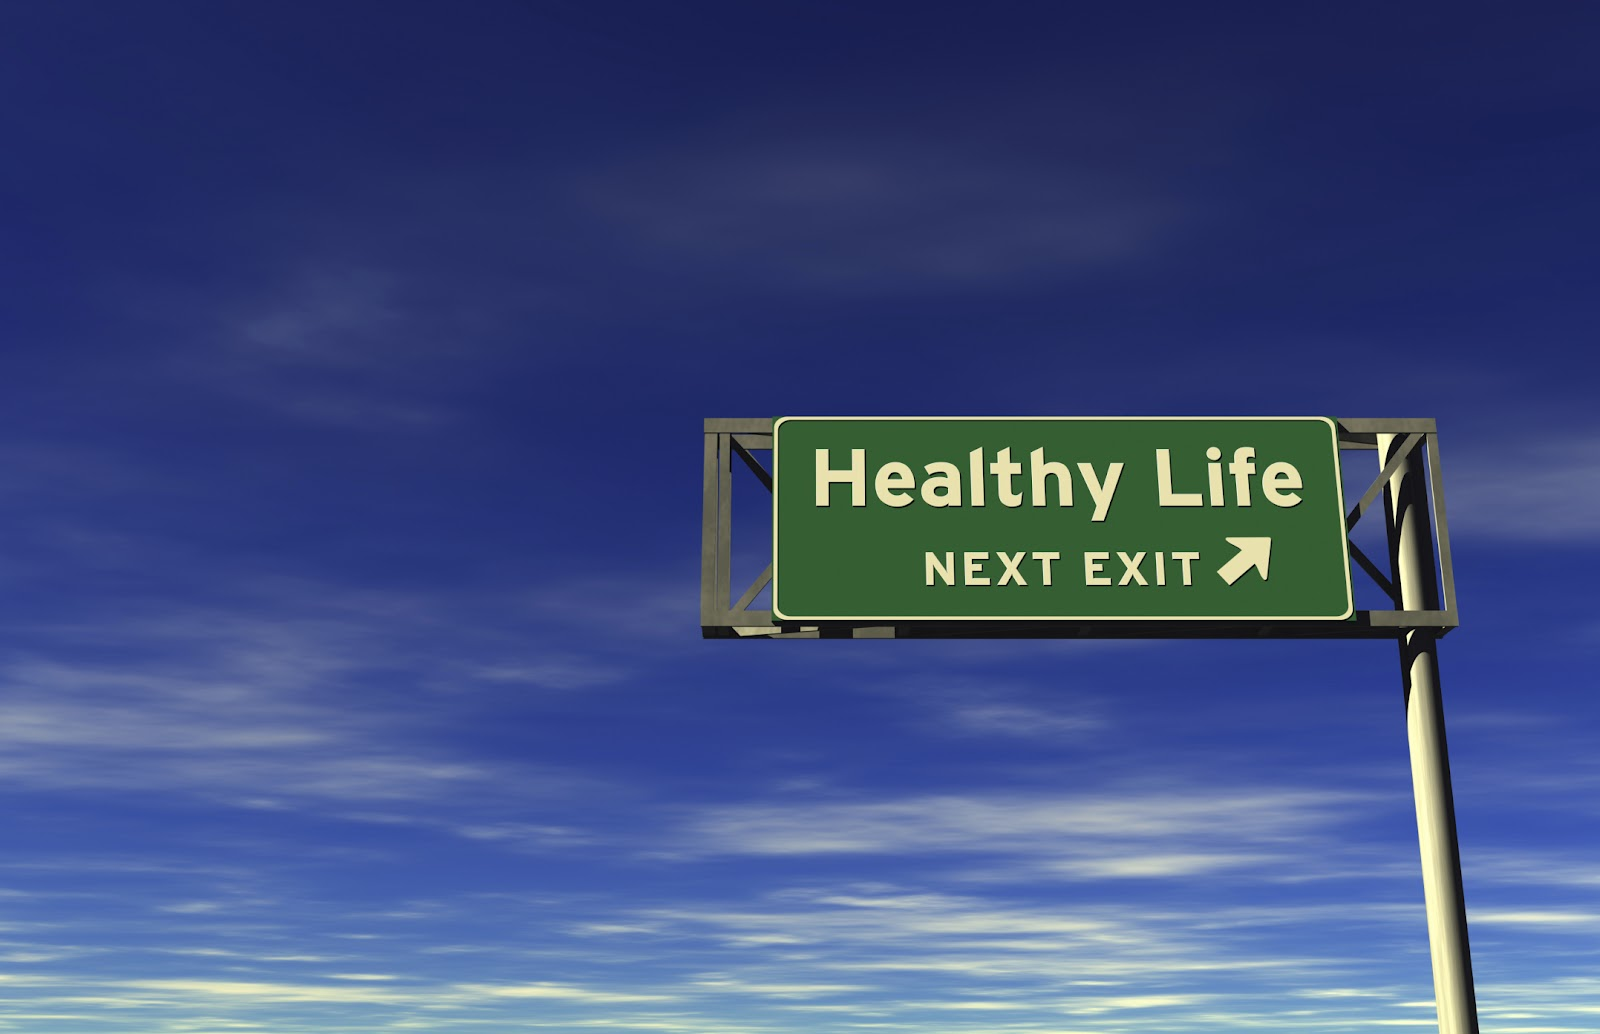 Healthy Life Ahead for Healthy Life